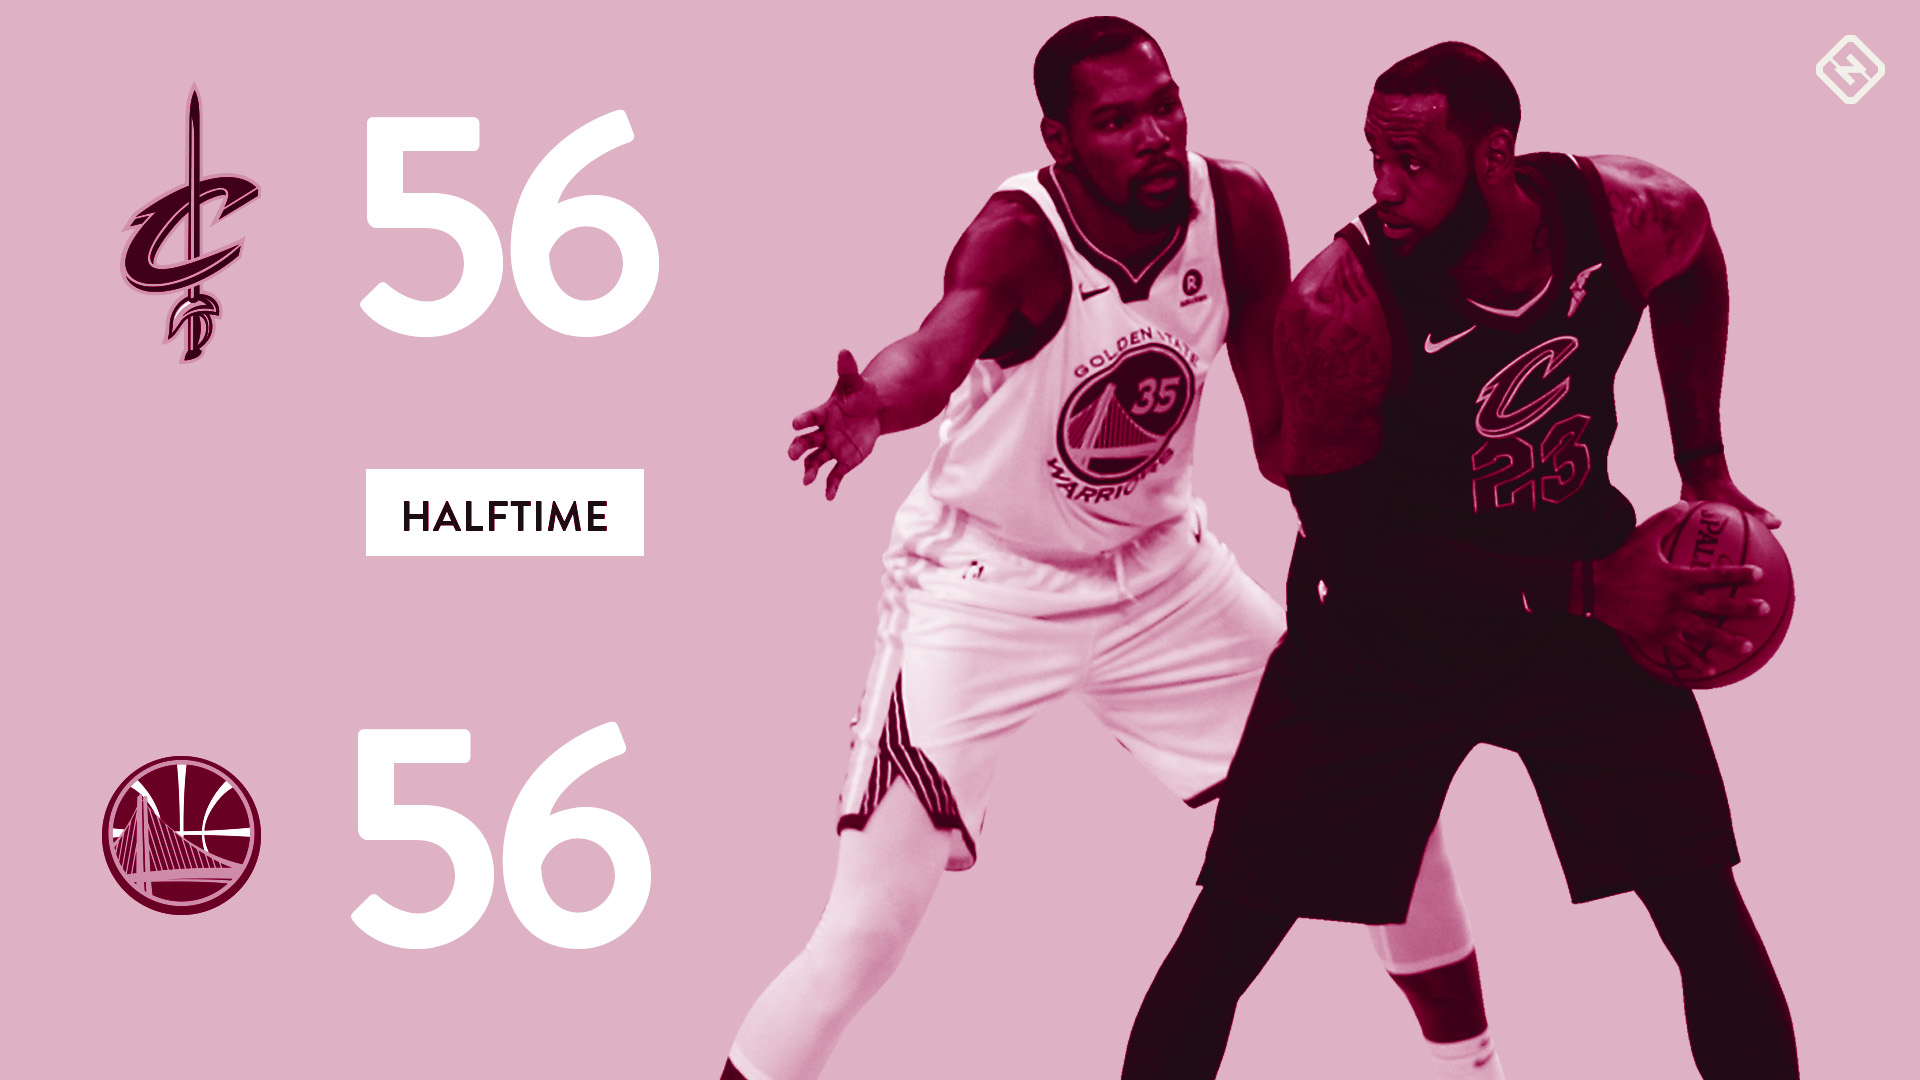 cavs-warriors-game-1-halftime-053118.jpg